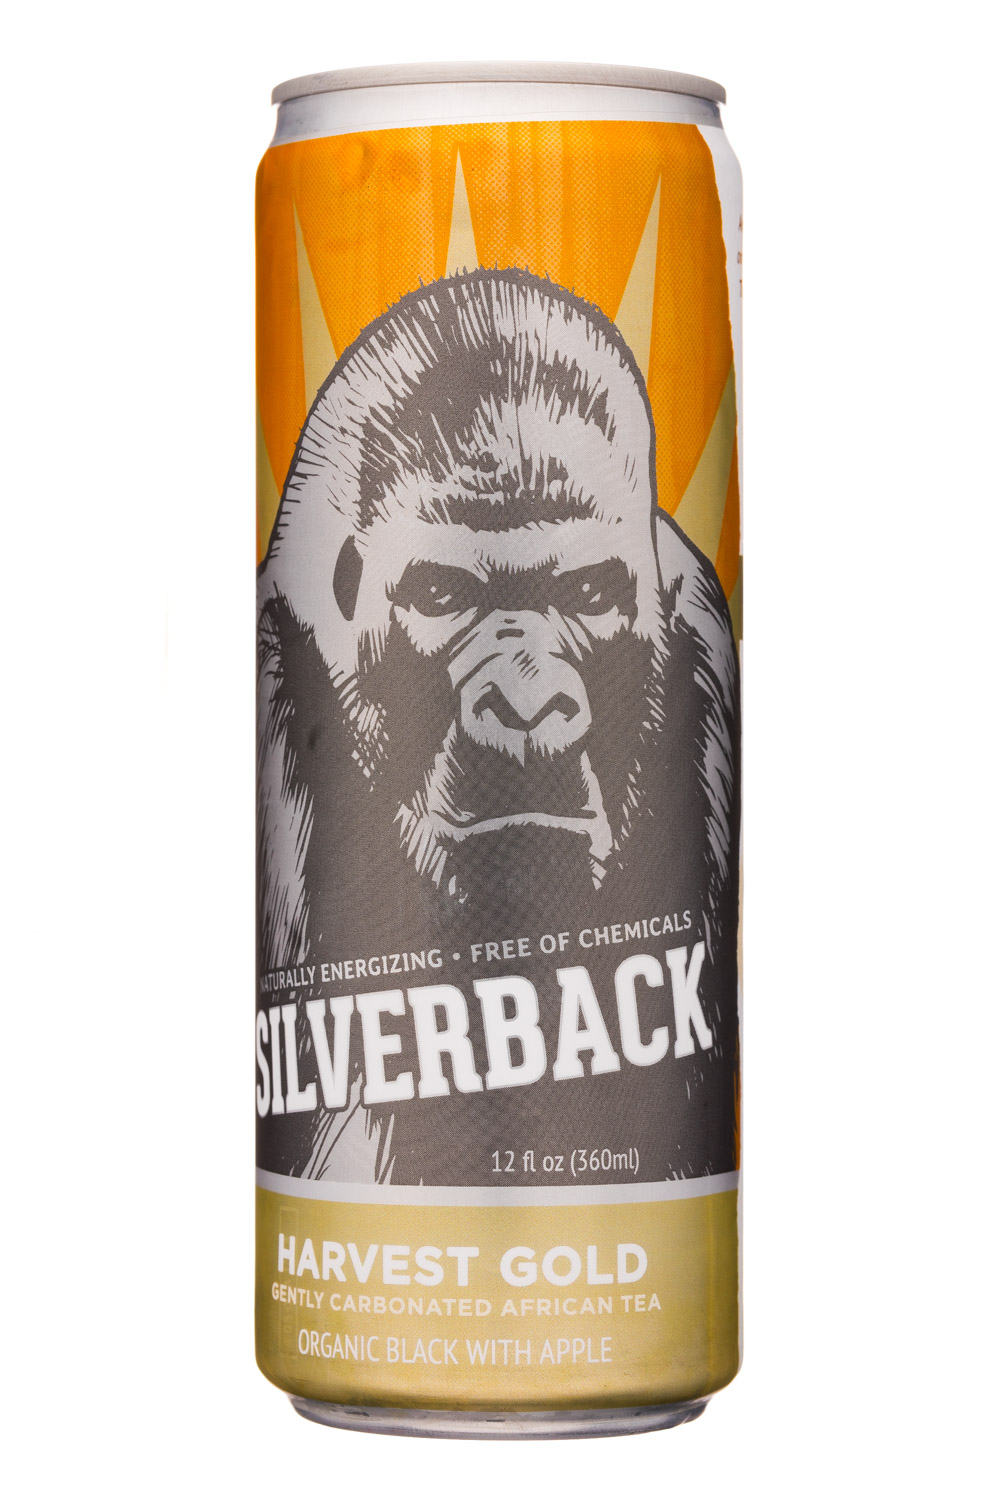 Silverback - Harvest Gold African Tea